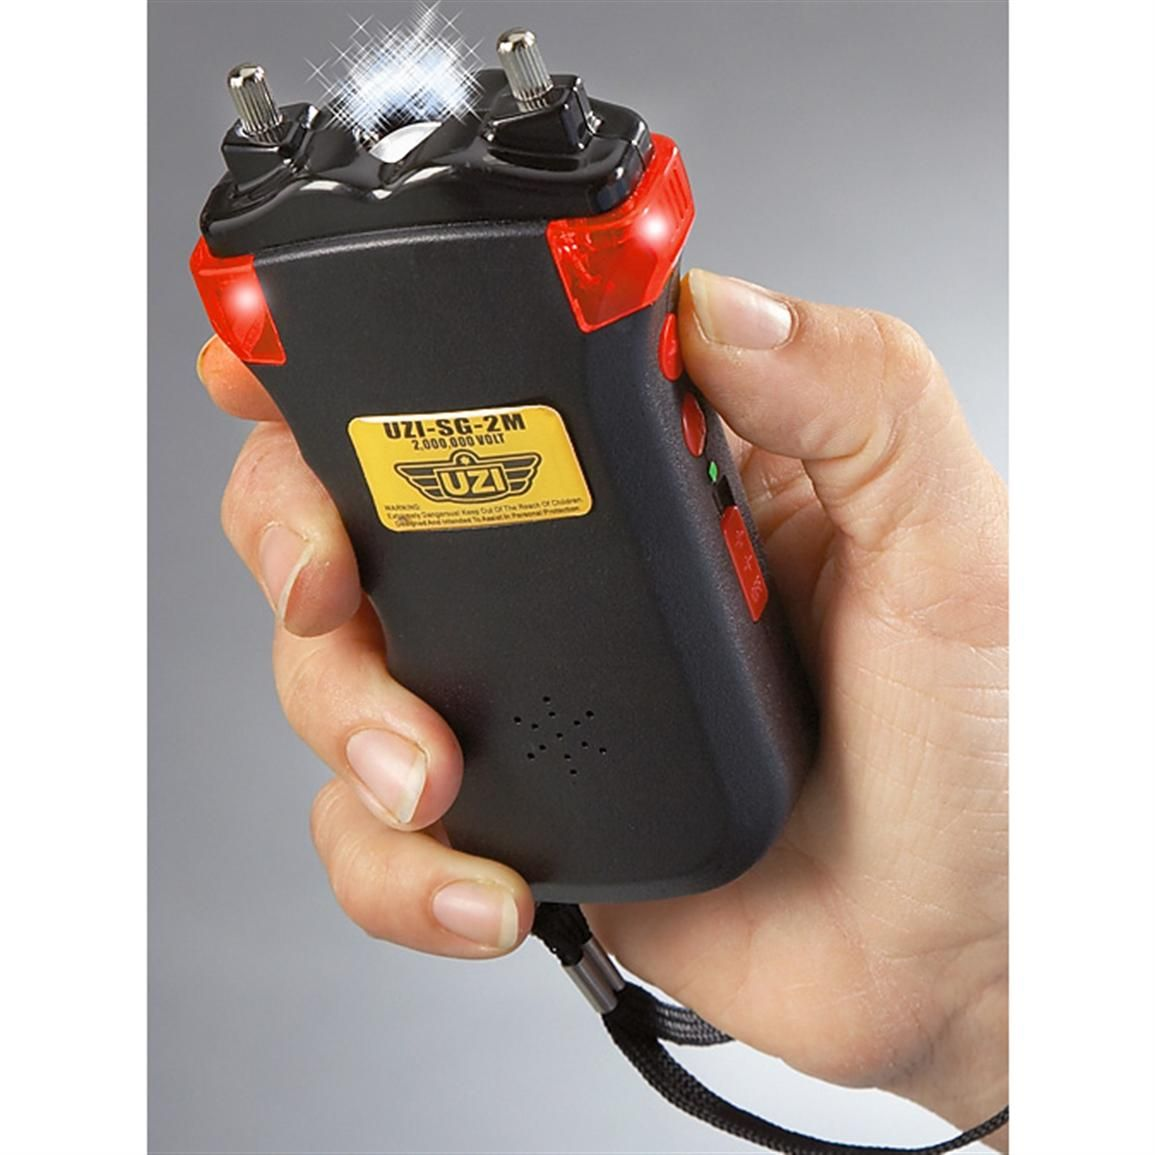 We Offer Stun Gun in Delhi India at Very Cheap Price from Our Ladies Safety Device Shop in Delhi, We Have Taser, Shock and Ladies Safety Gun in India.